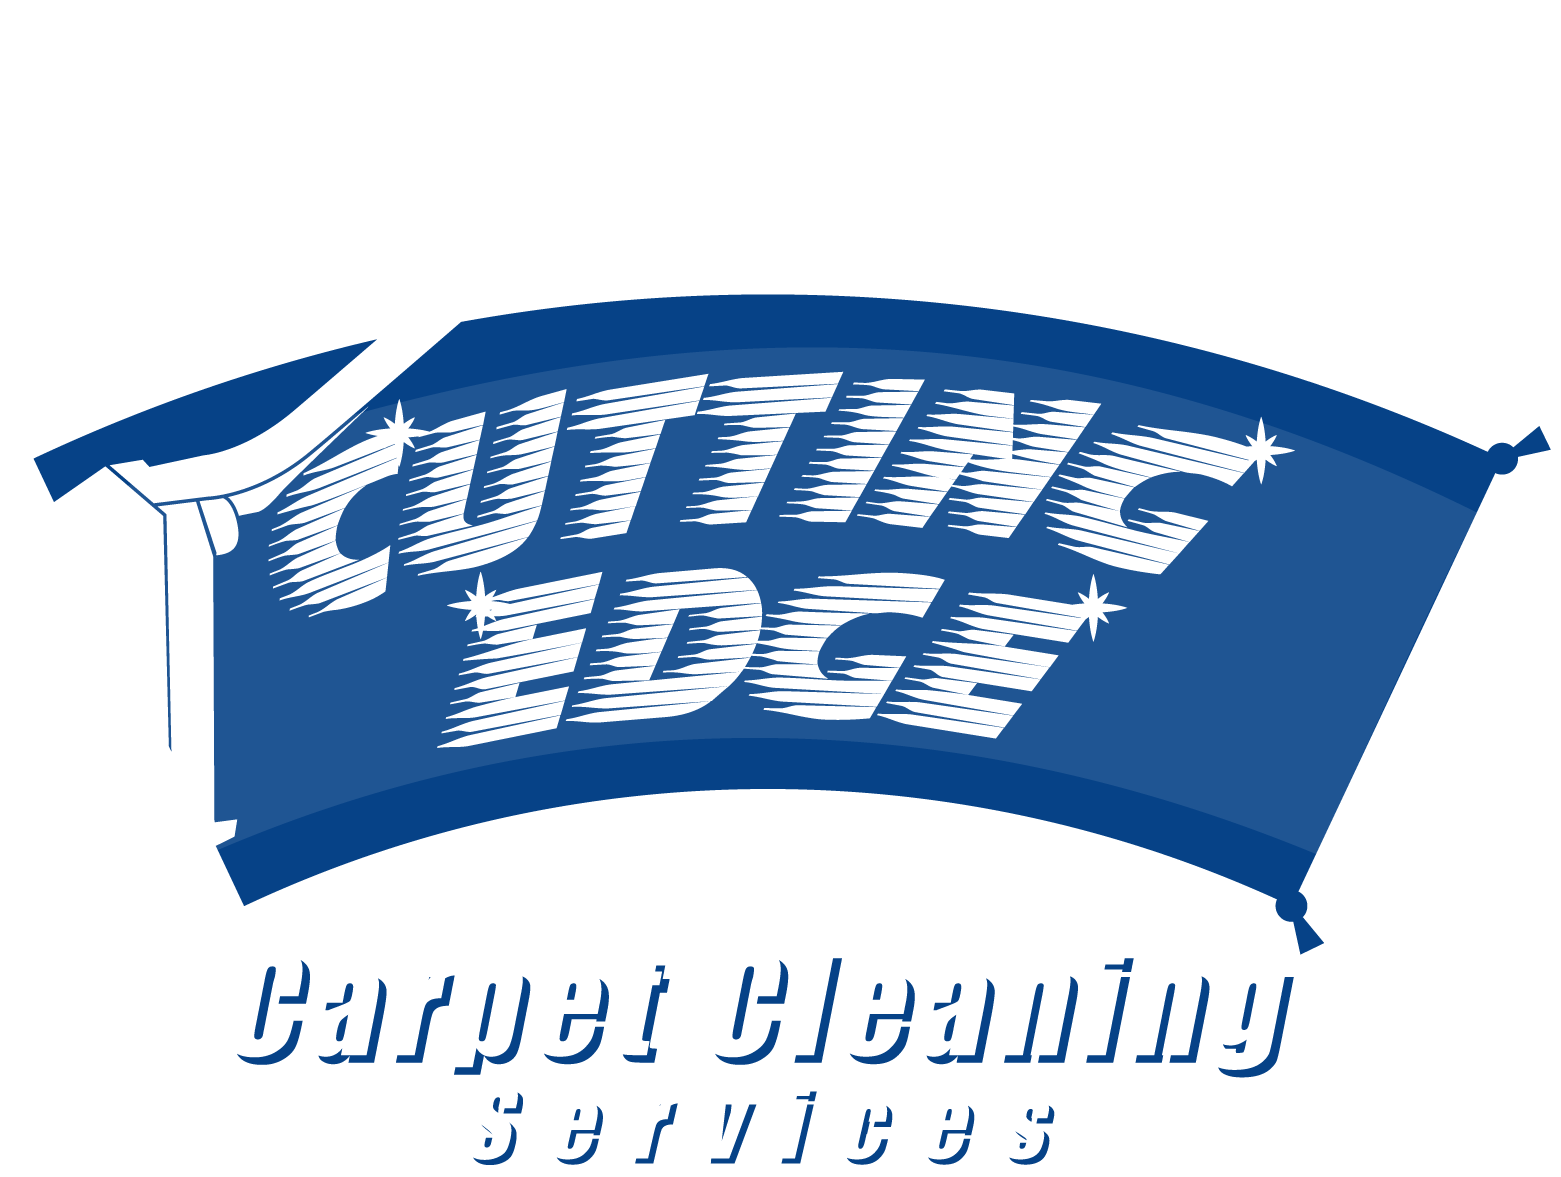 Cutting Edge Carpet Cleaning